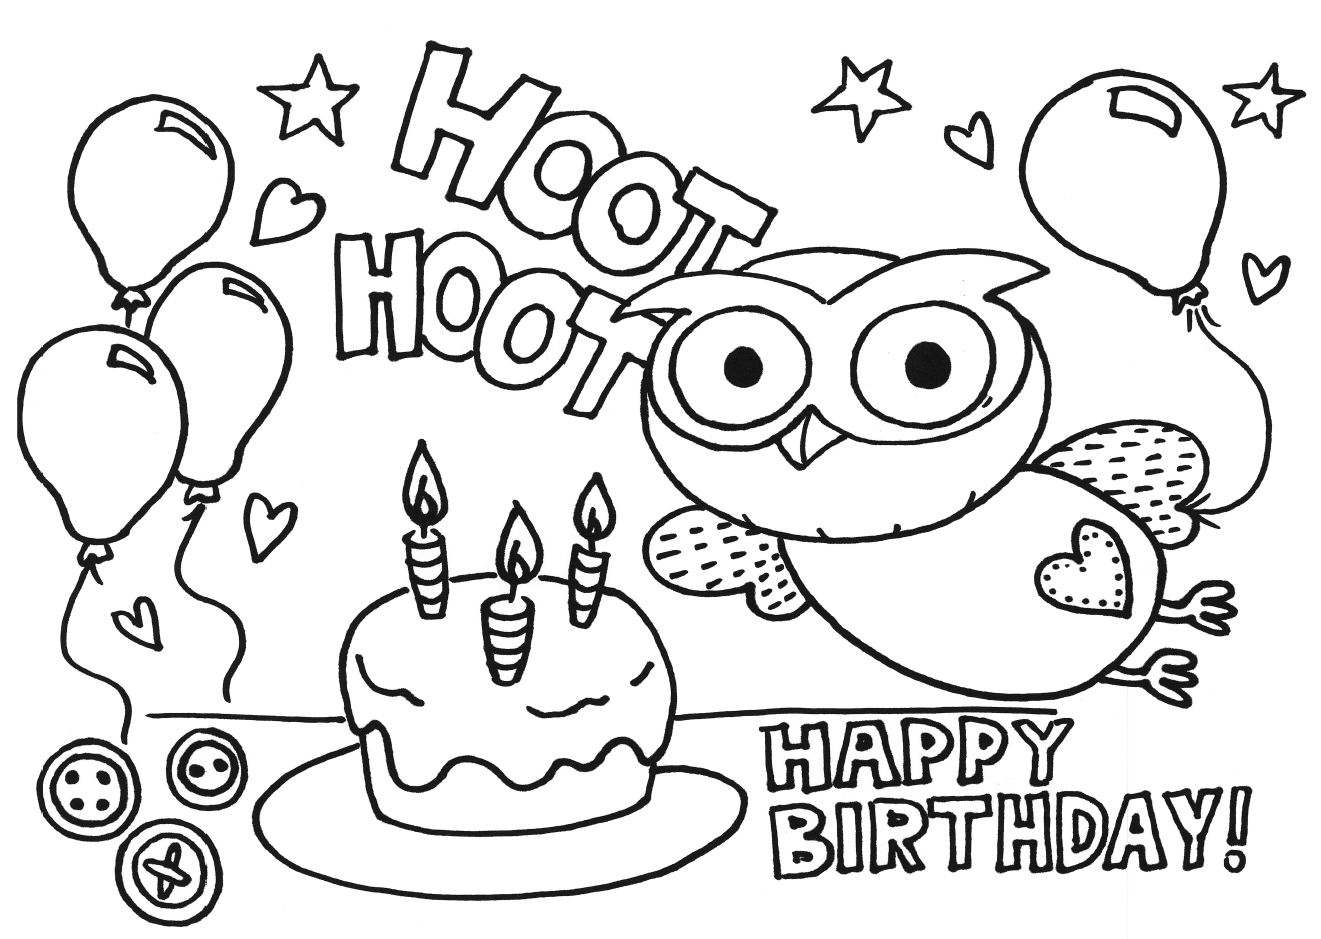 free printable birthday colouring pages ; free-printable-birthday-coloring-pages-0